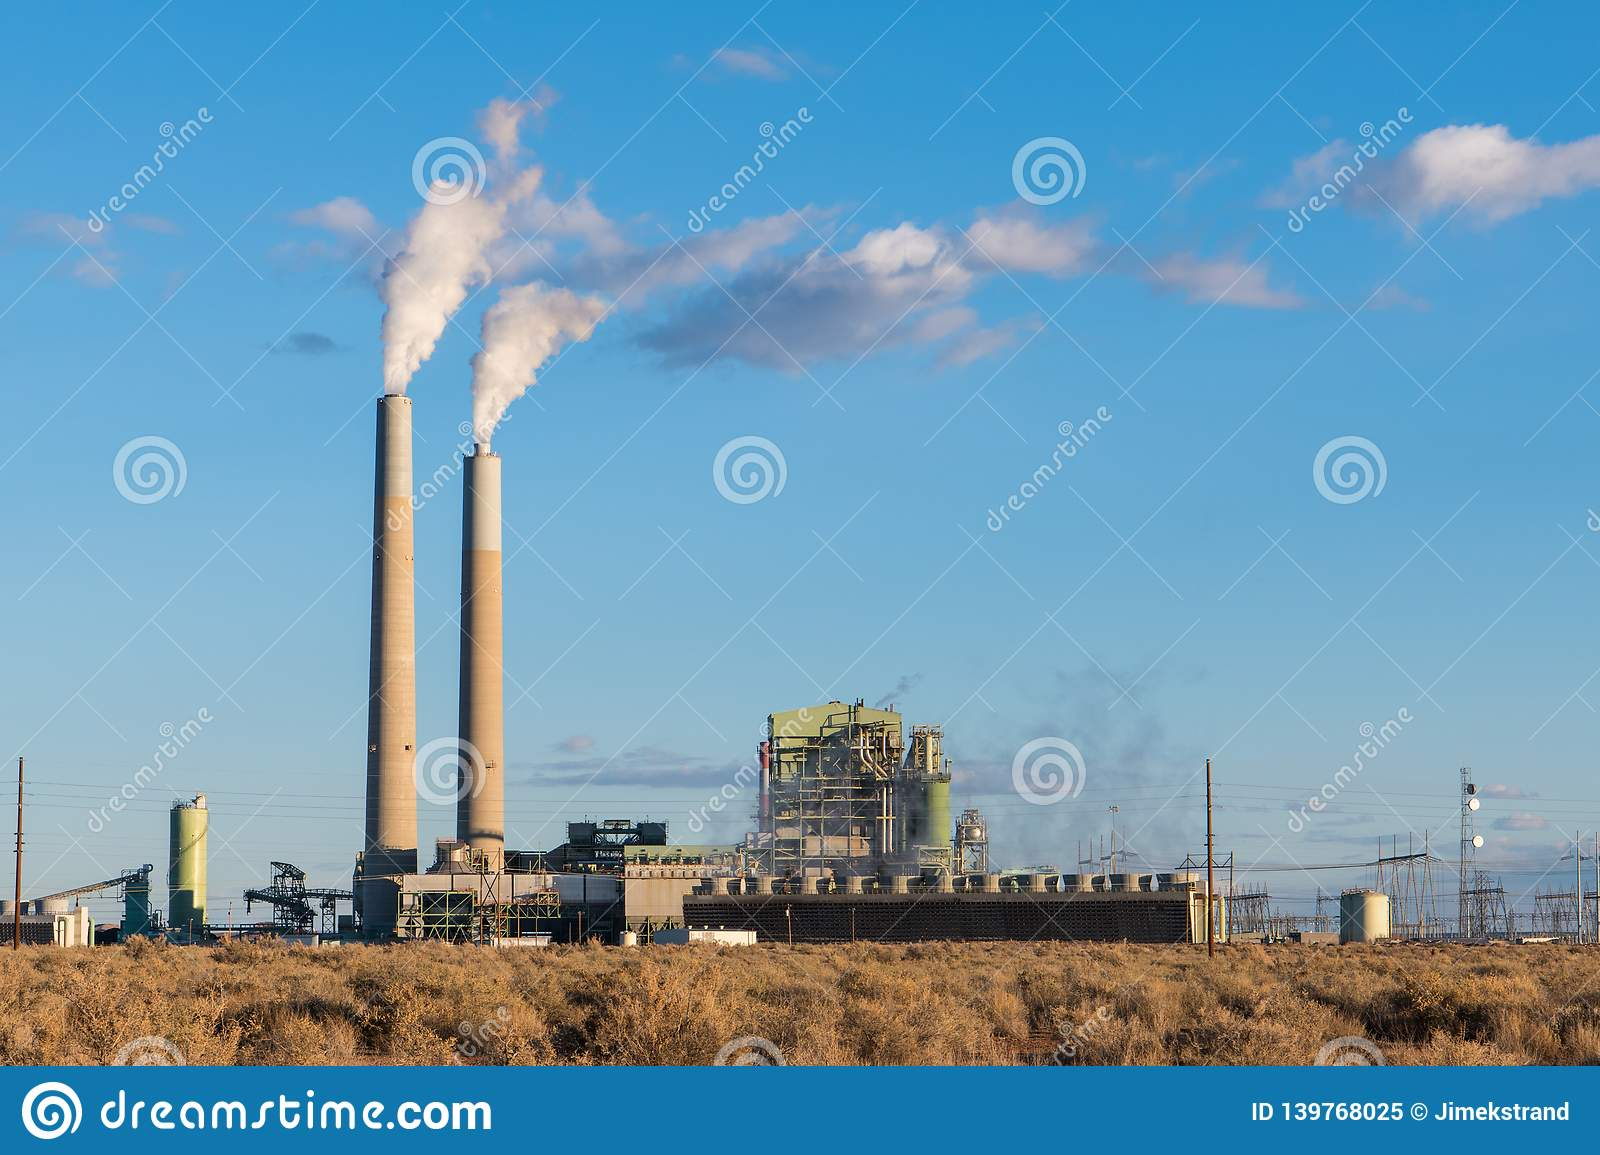 A coal-fired electrical power plant with smokestacks emitting plumes of smoke in the southwestern United States